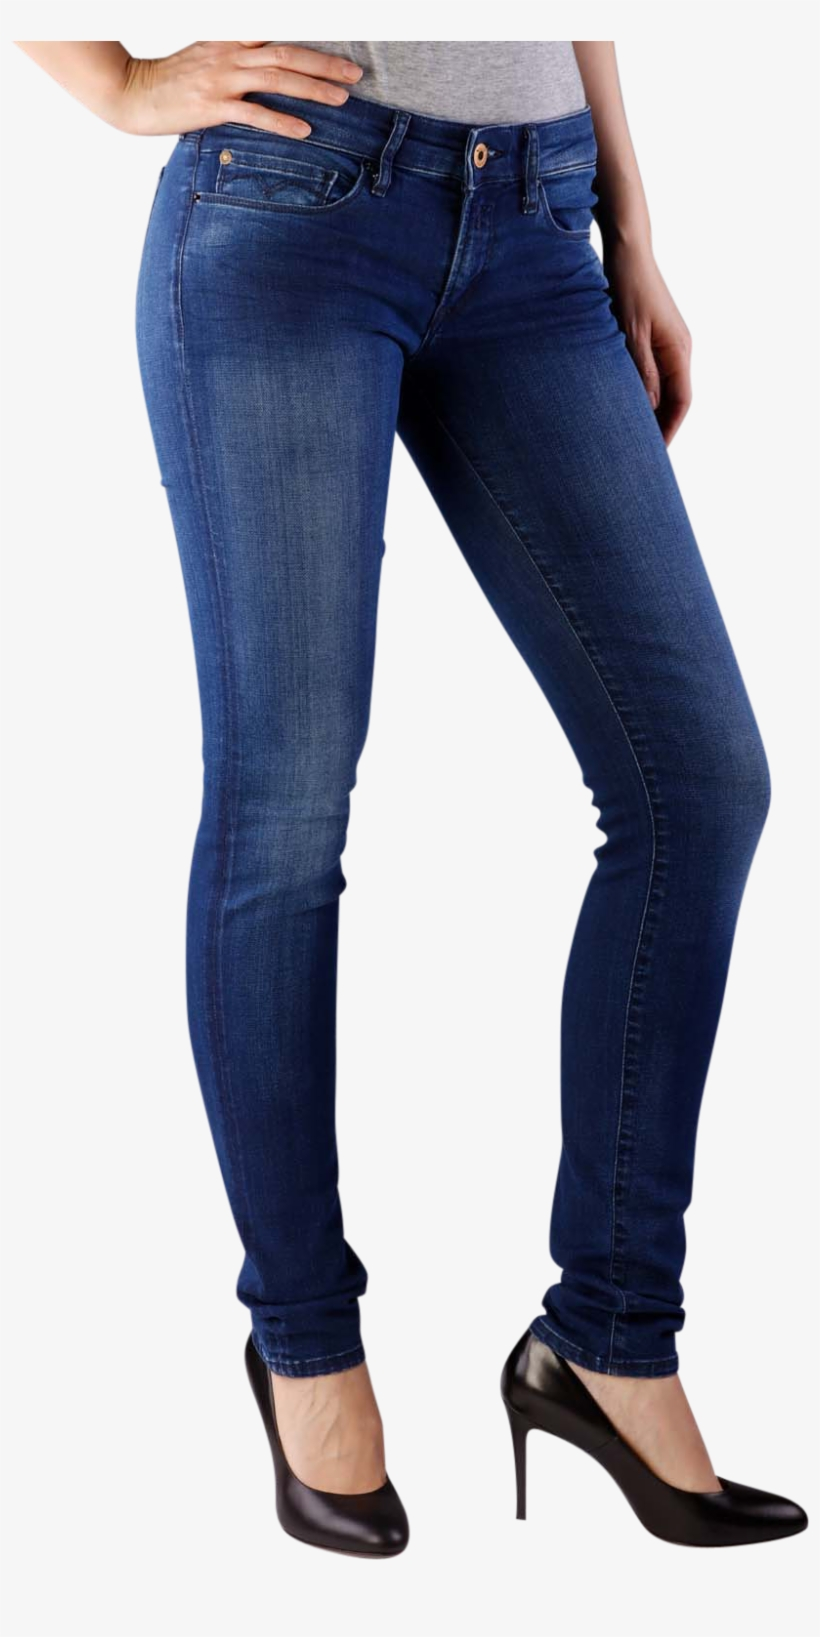 Replay Damen Skinny Jeans Rose Wx613 Super Jeans In Pantalones Levis De Mujer Outlet Png Image Transparent Png Free Download On Seekpng